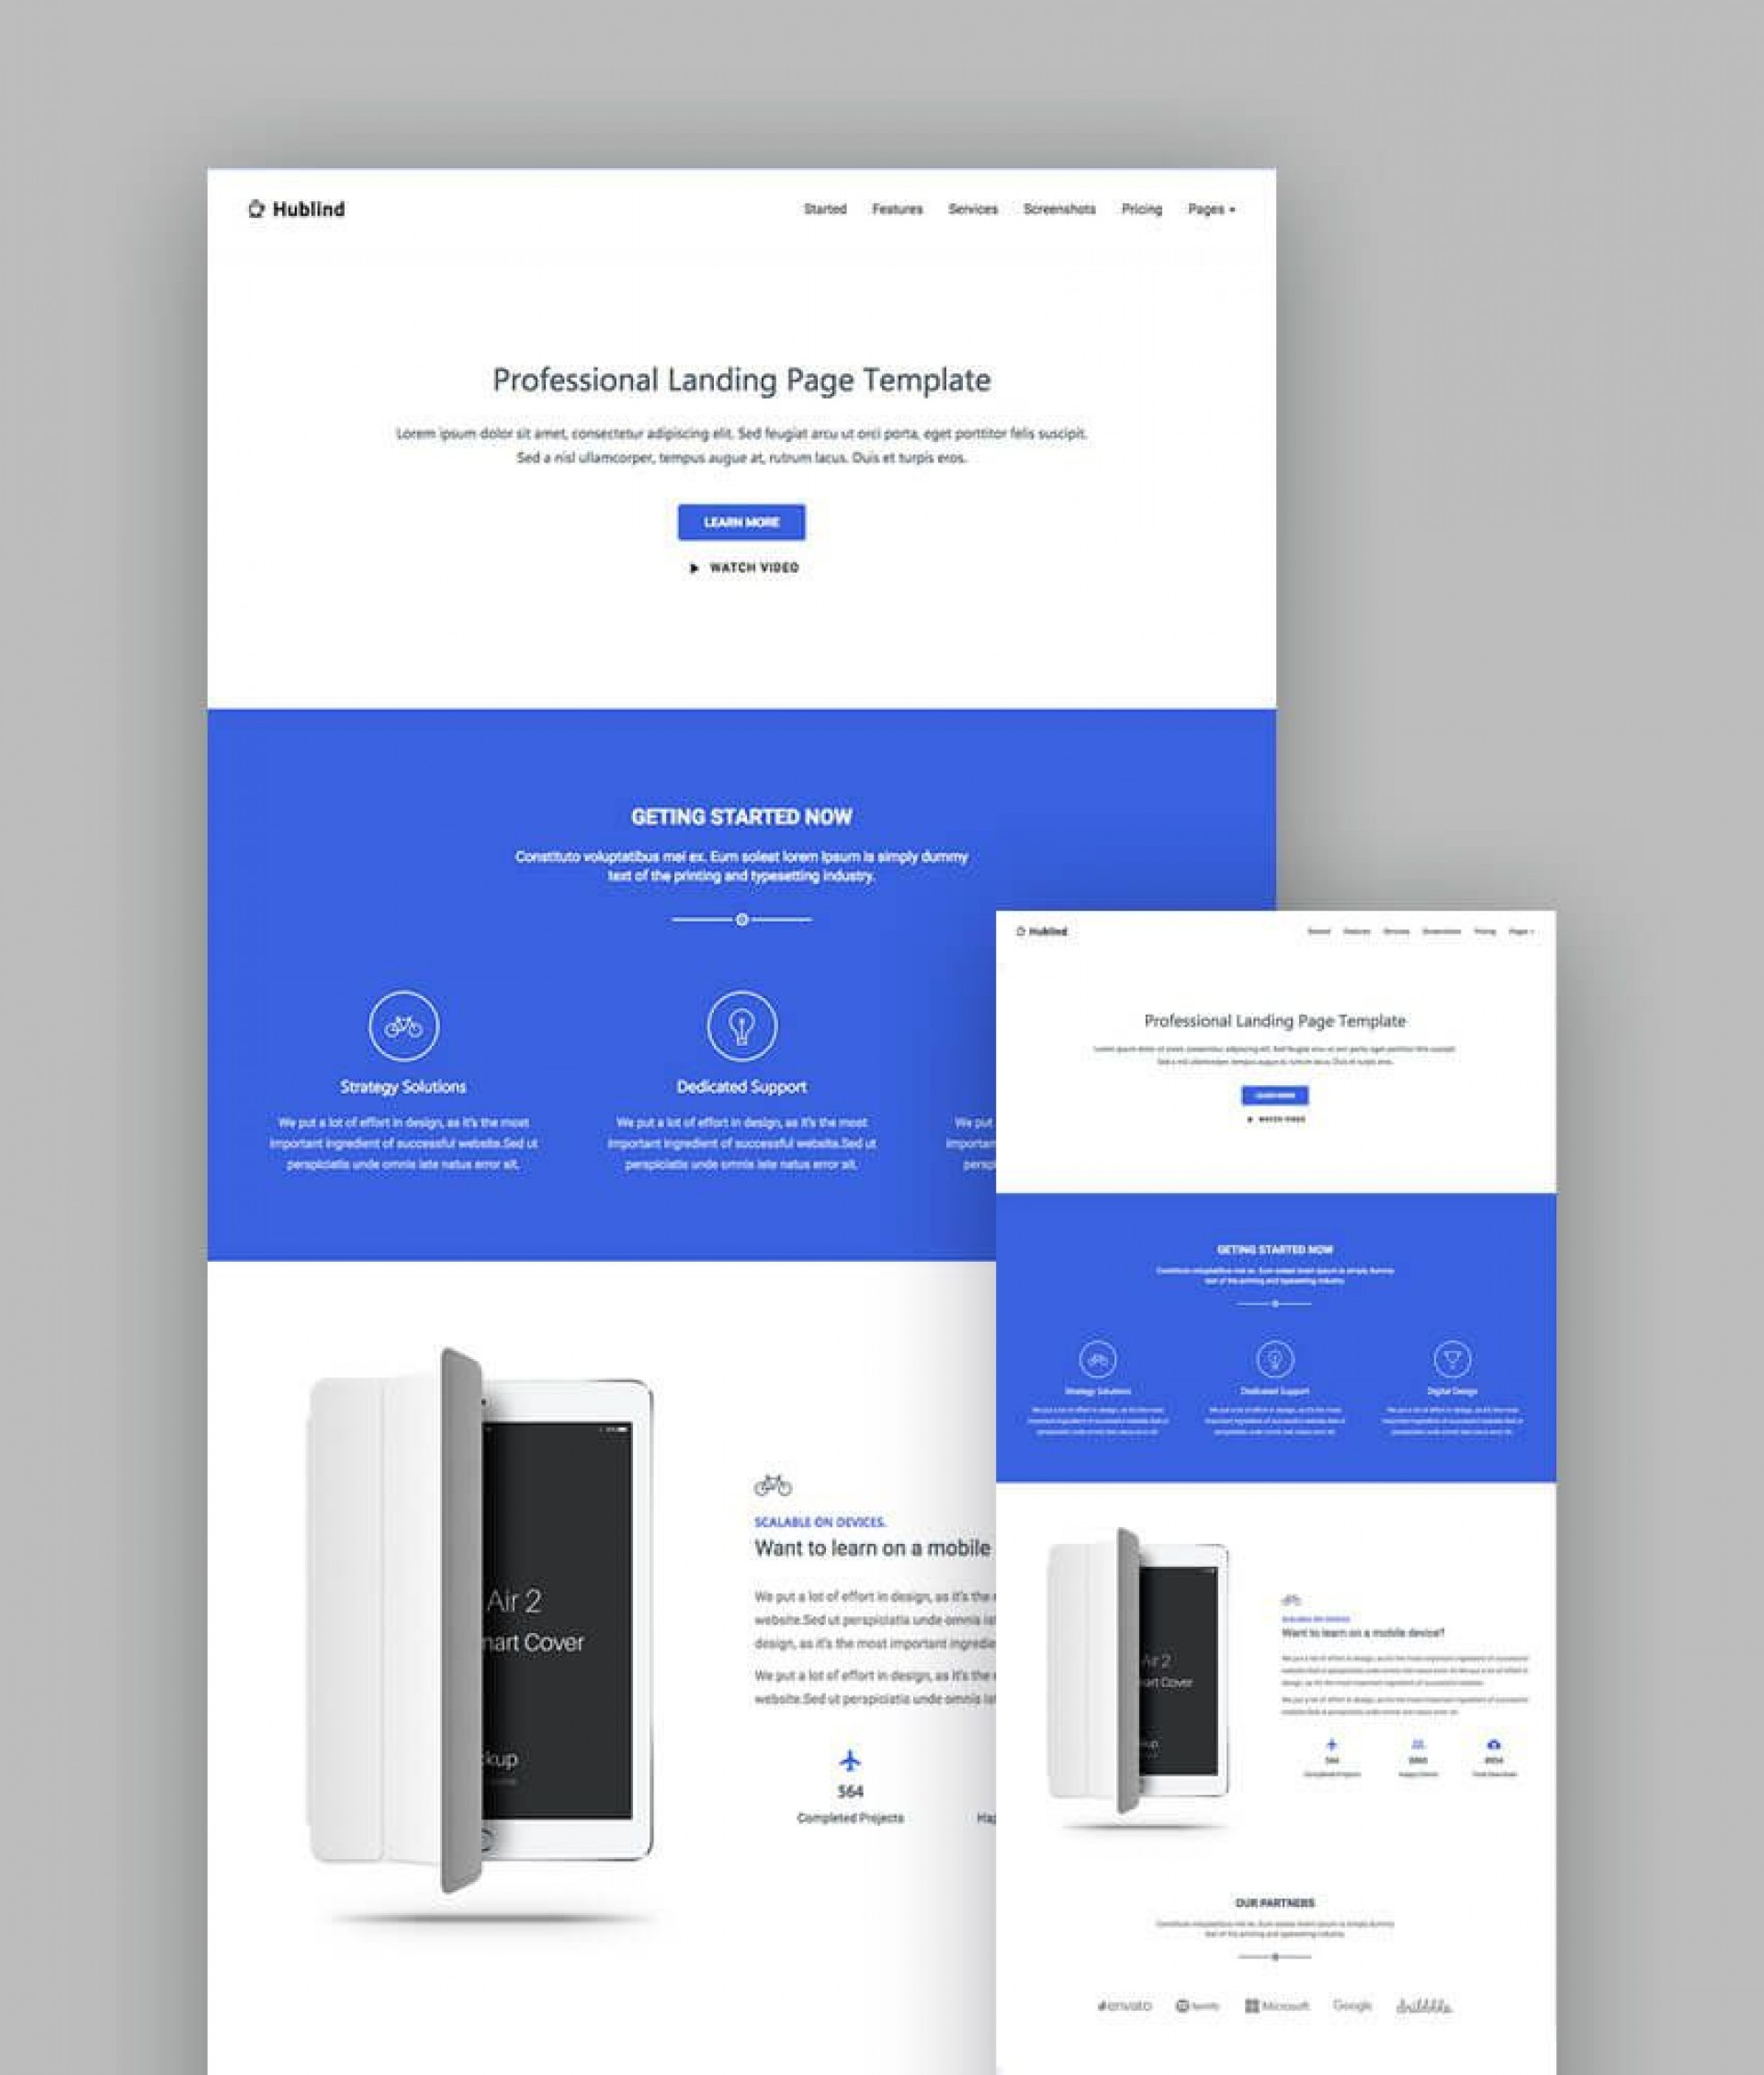 002 Formidable Responsive Landing Page Template Highest Clarity  Templates Marketo Free Pardot Html5 Download1920